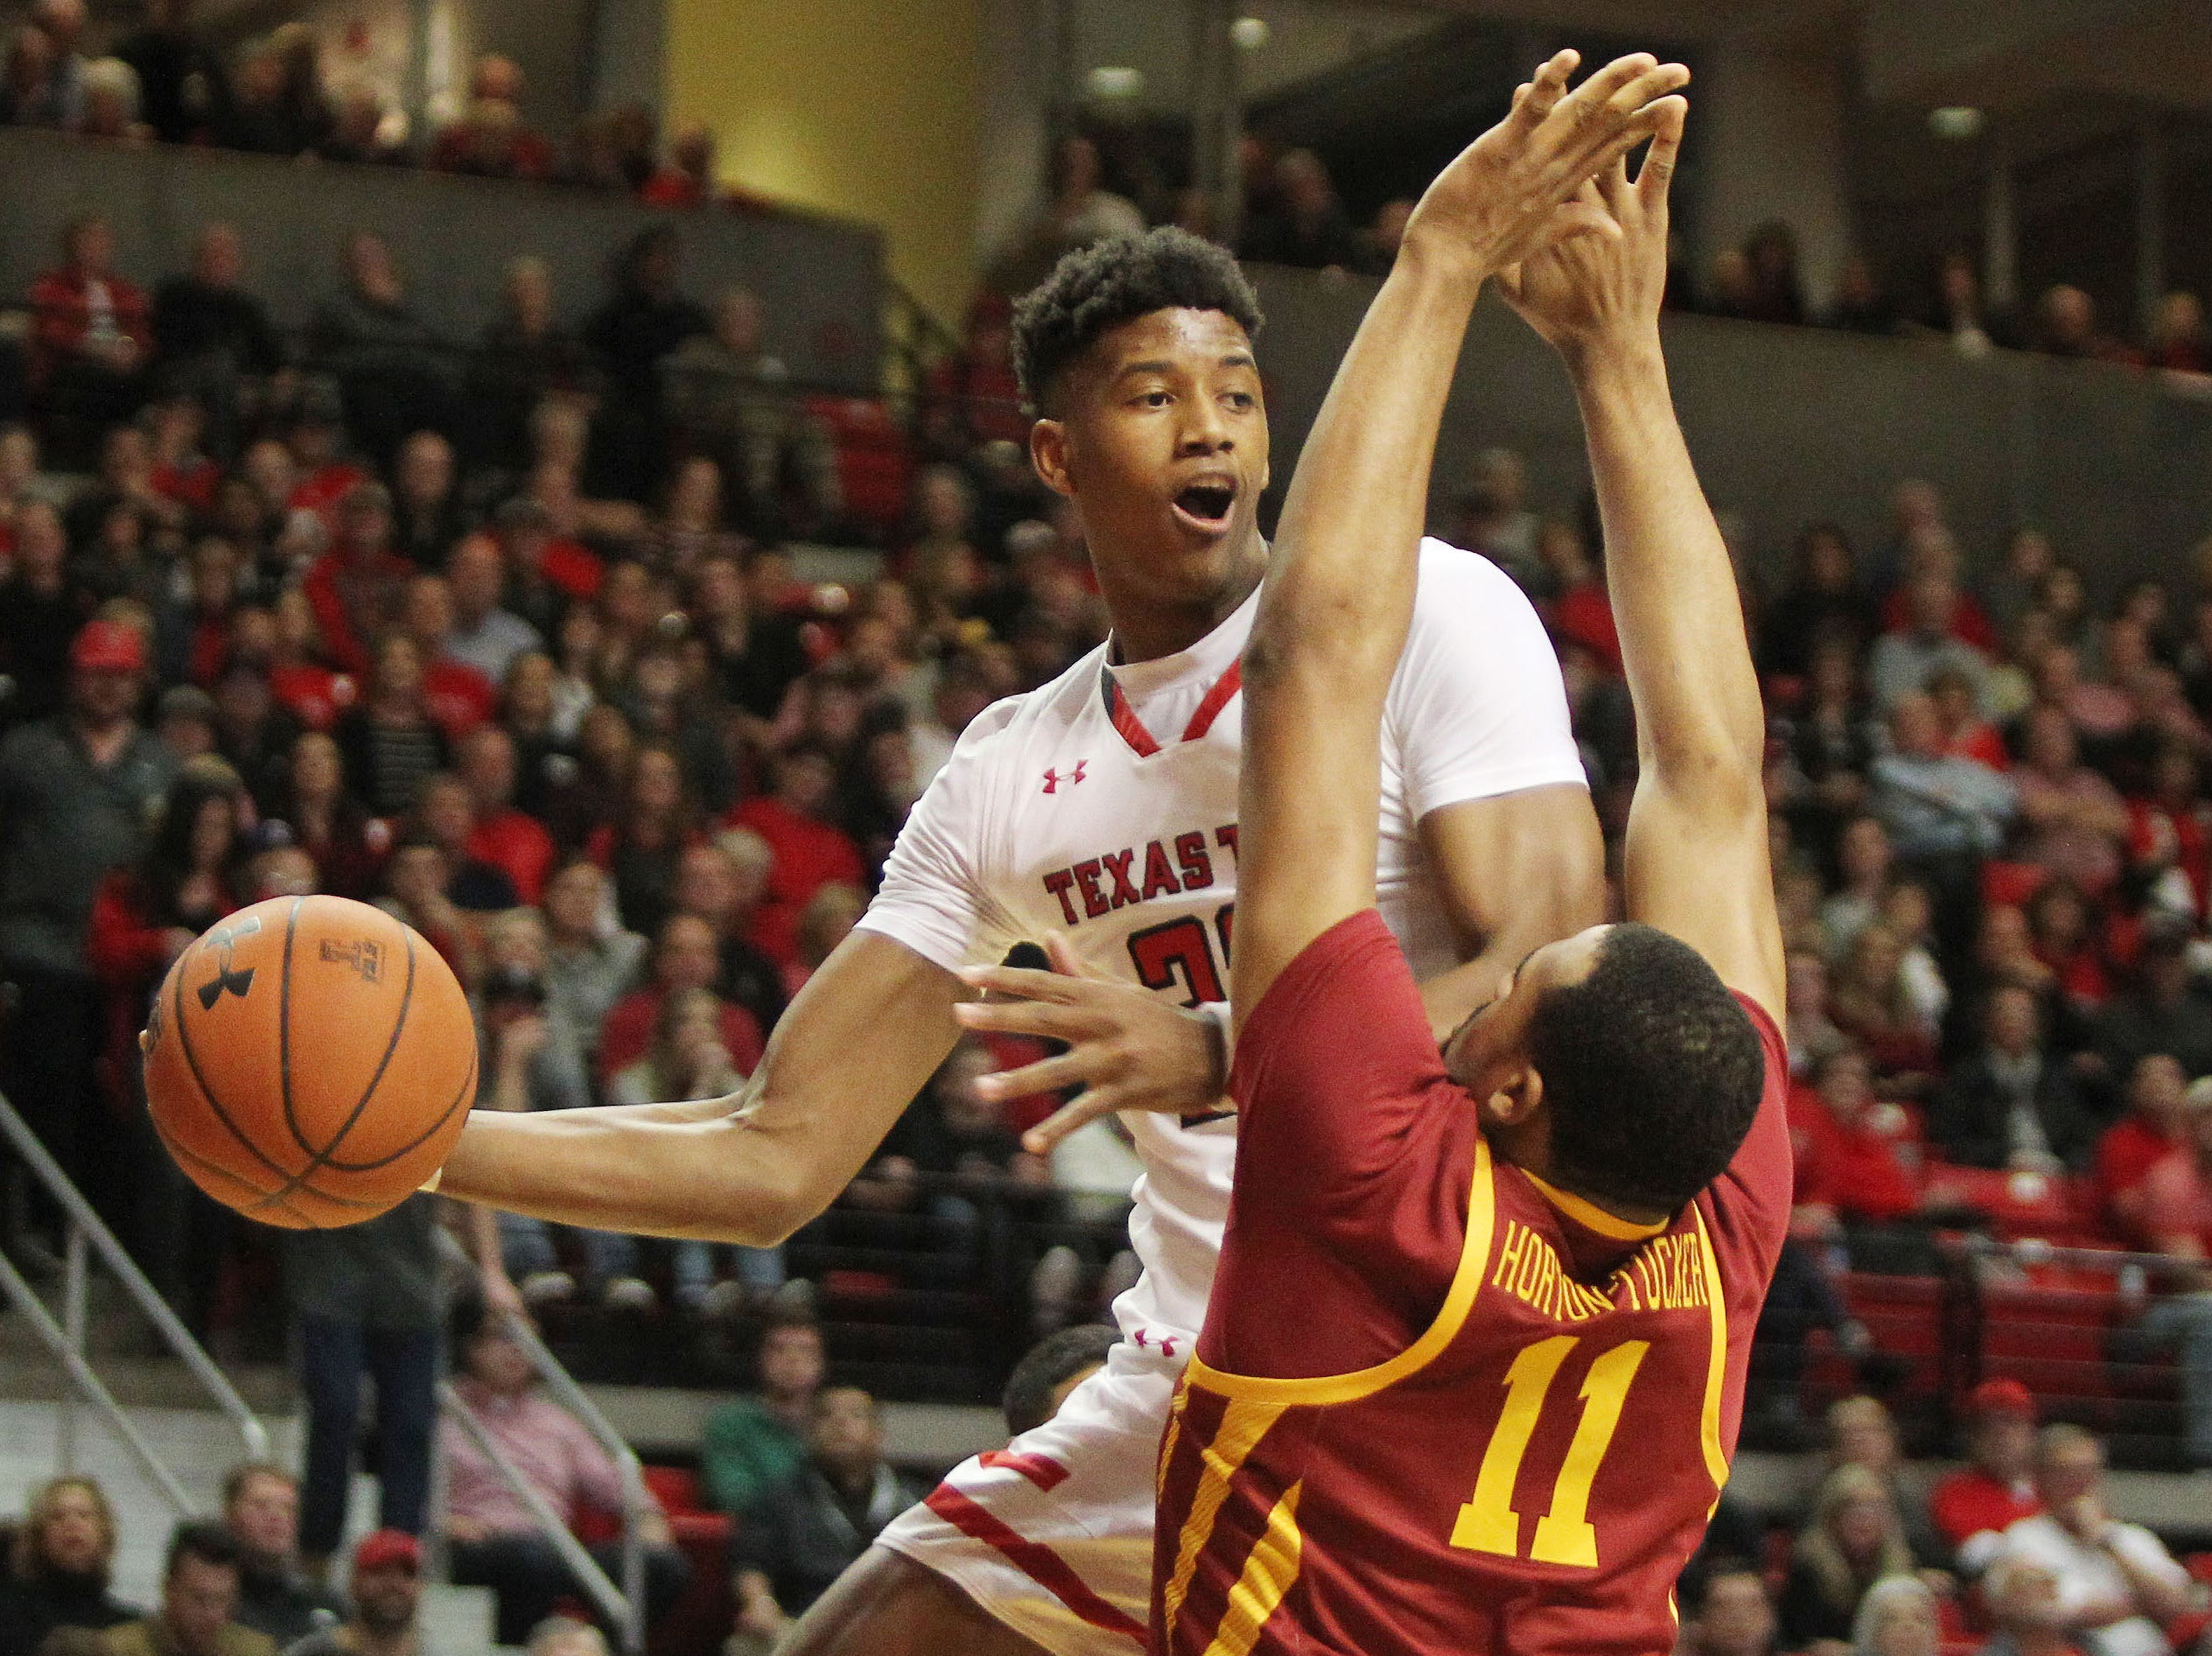 Jan 16, 2019; Lubbock, TX, USA; Texas Tech Red Raiders guard Jarrett Culver (23) passes the ball around Iowa State Cyclones guard Talen Horton-Tucker (11) in the first half at United Supermarkets Arena.